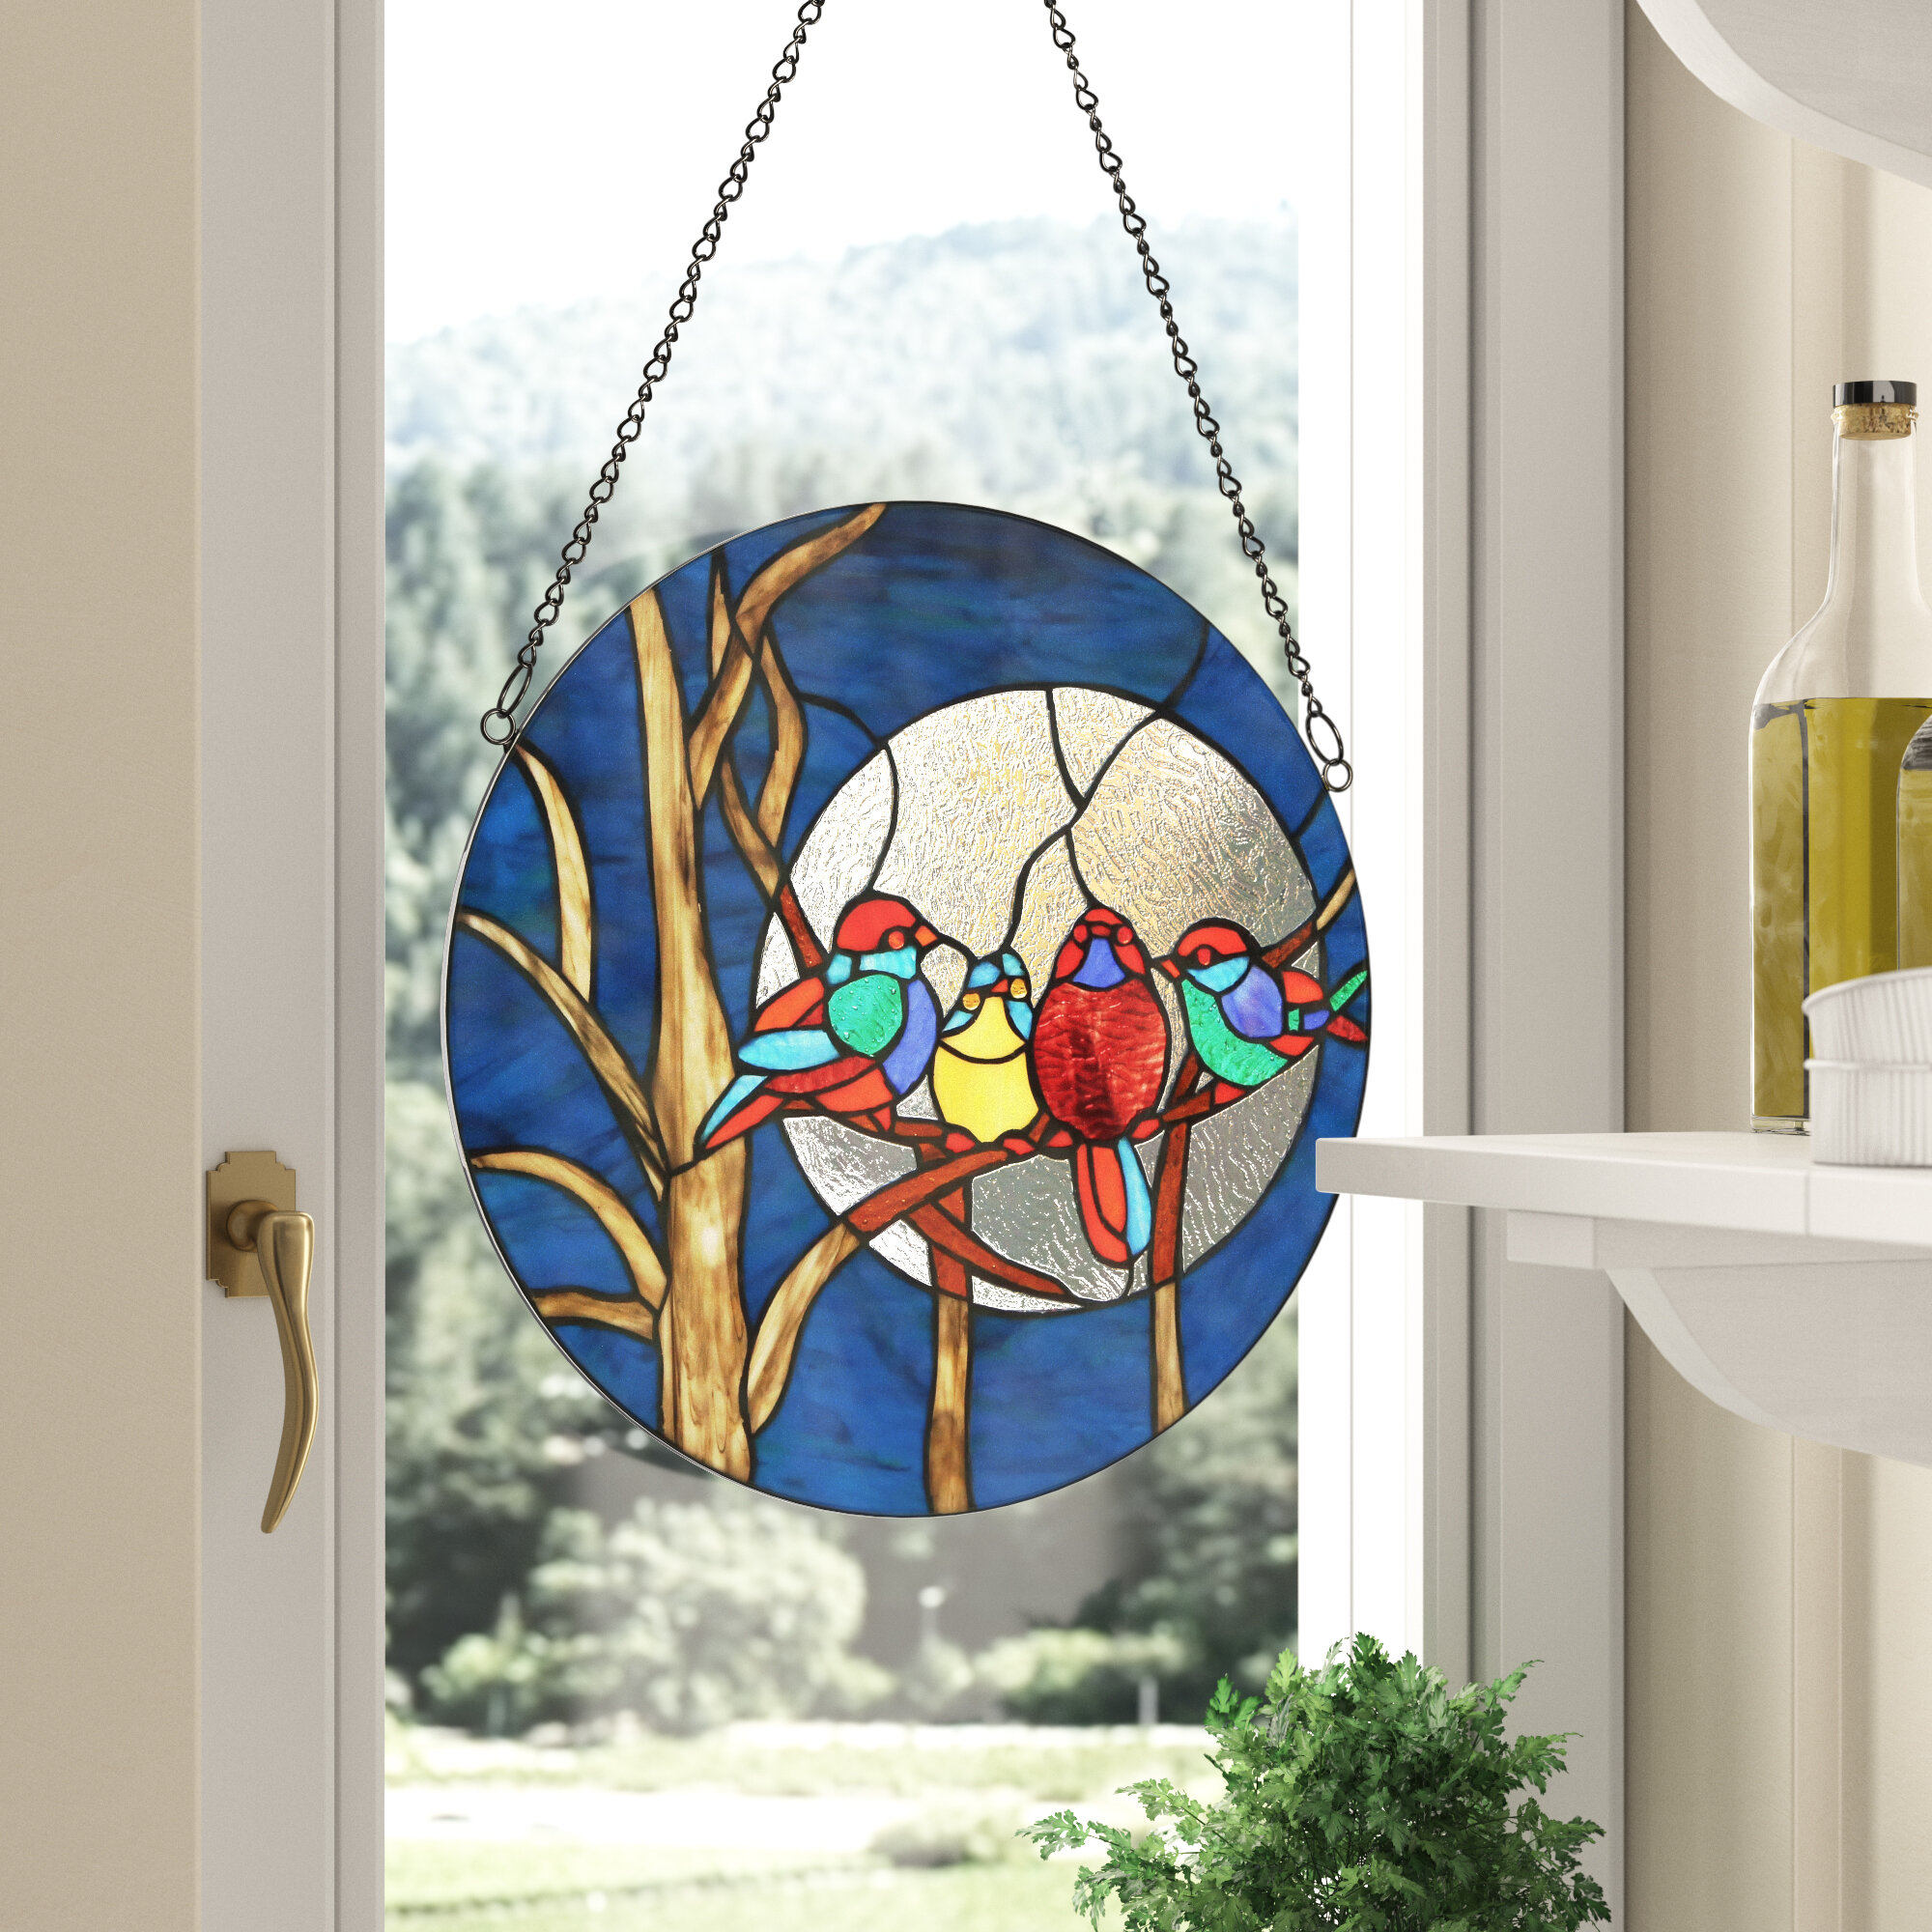 Charlton Home Birds In The Night Sky Round Stained Glass Window Panel Reviews Wayfair